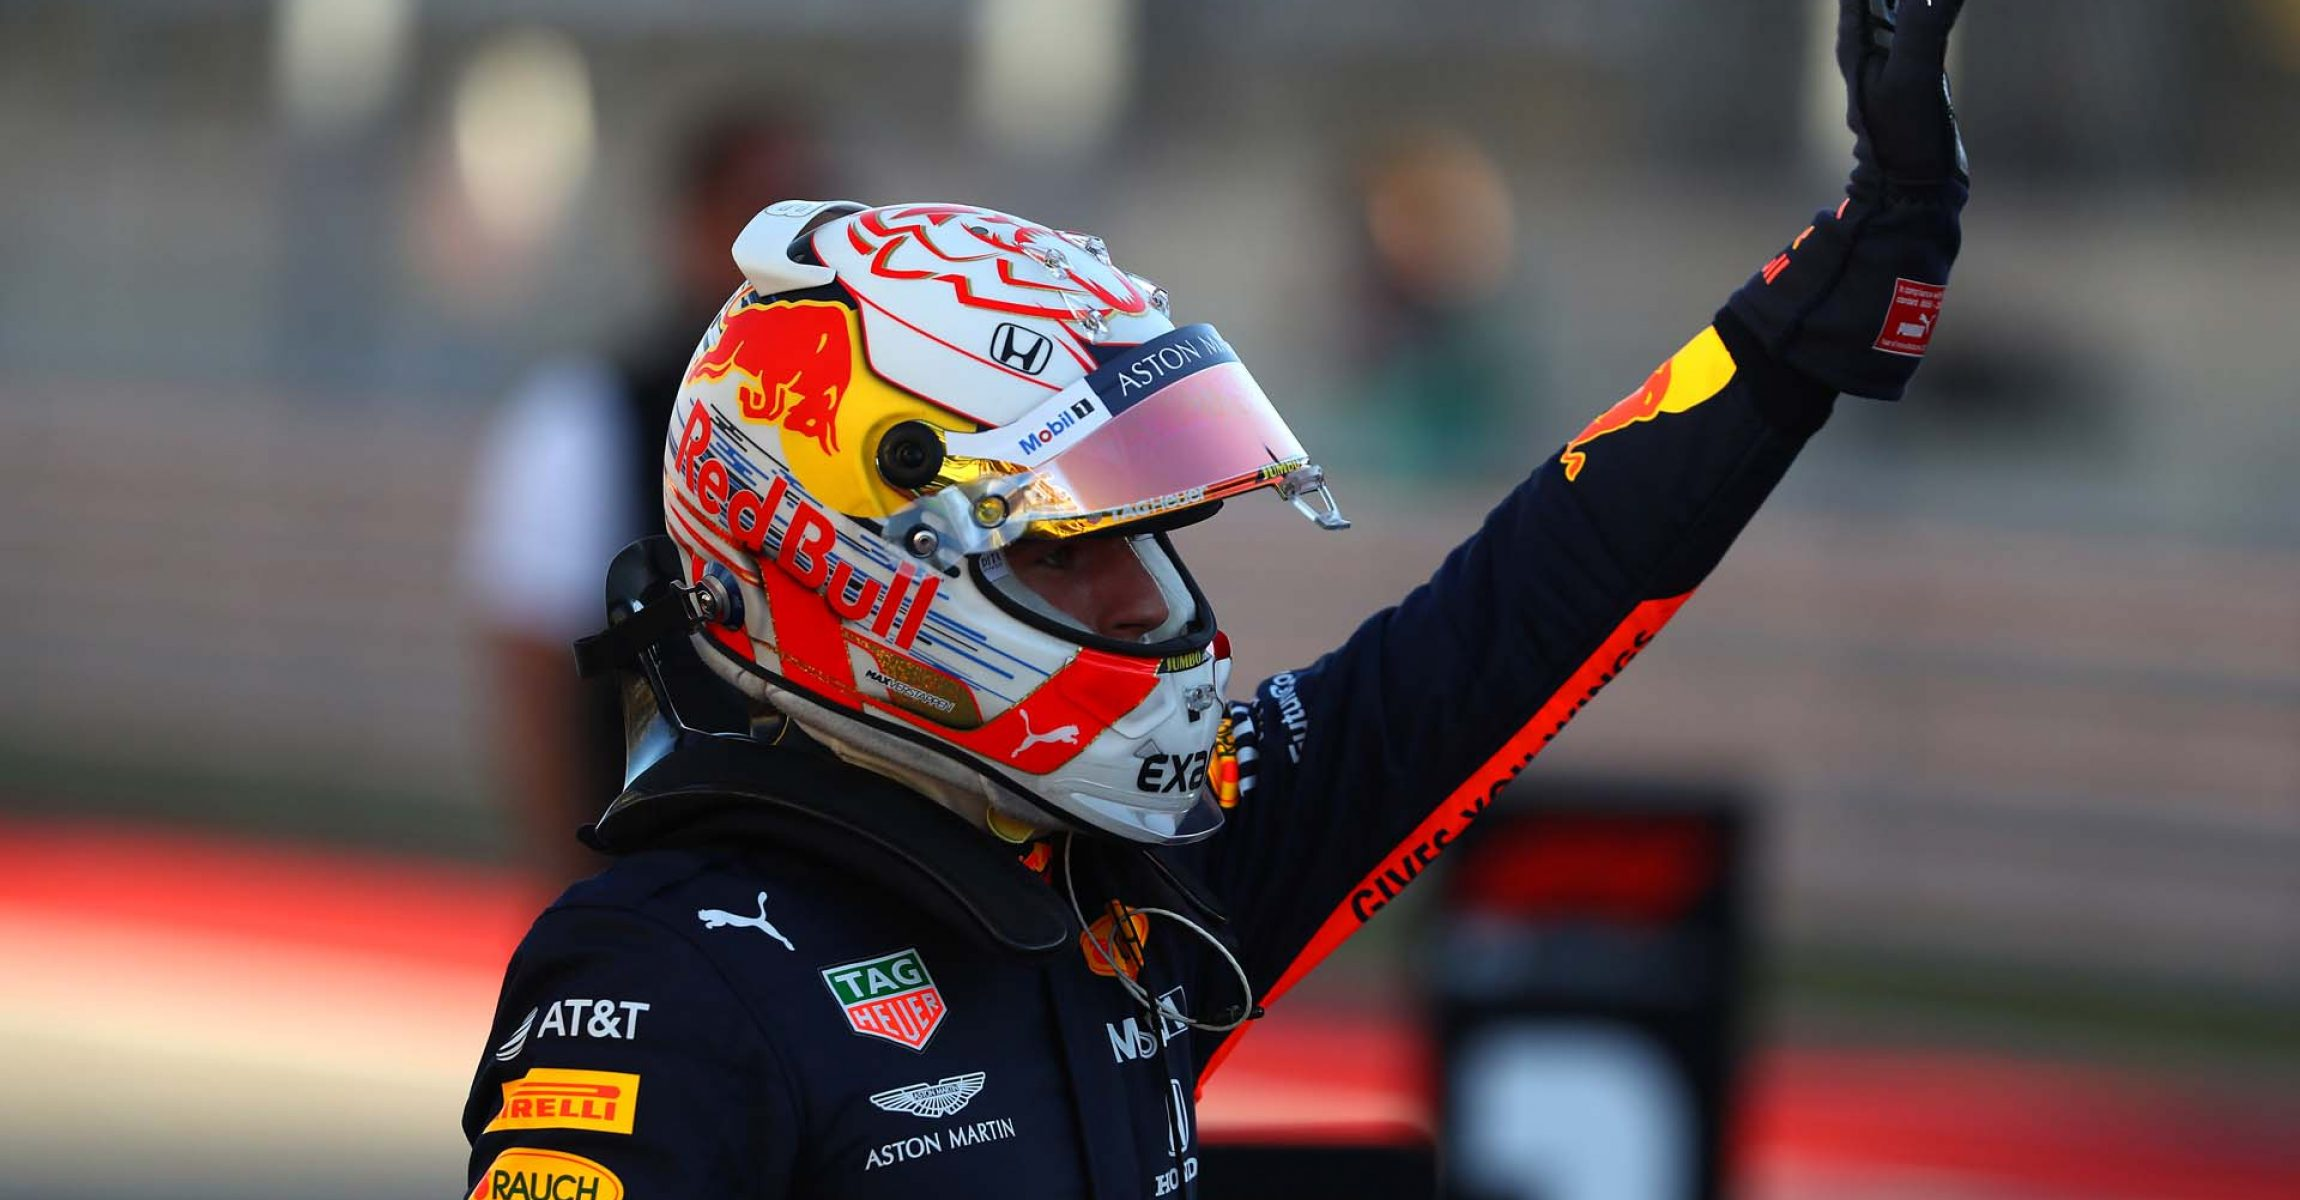 AUSTIN, TEXAS - NOVEMBER 02: Third place qualifier Max Verstappen of Netherlands and Red Bull Racing celebrates in parc ferme during qualifying for the F1 Grand Prix of USA at Circuit of The Americas on November 02, 2019 in Austin, Texas. (Photo by Mark Thompson/Getty Images) // Getty Images / Red Bull Content Pool // AP-222MFUWXH1W11 // Usage for editorial use only //